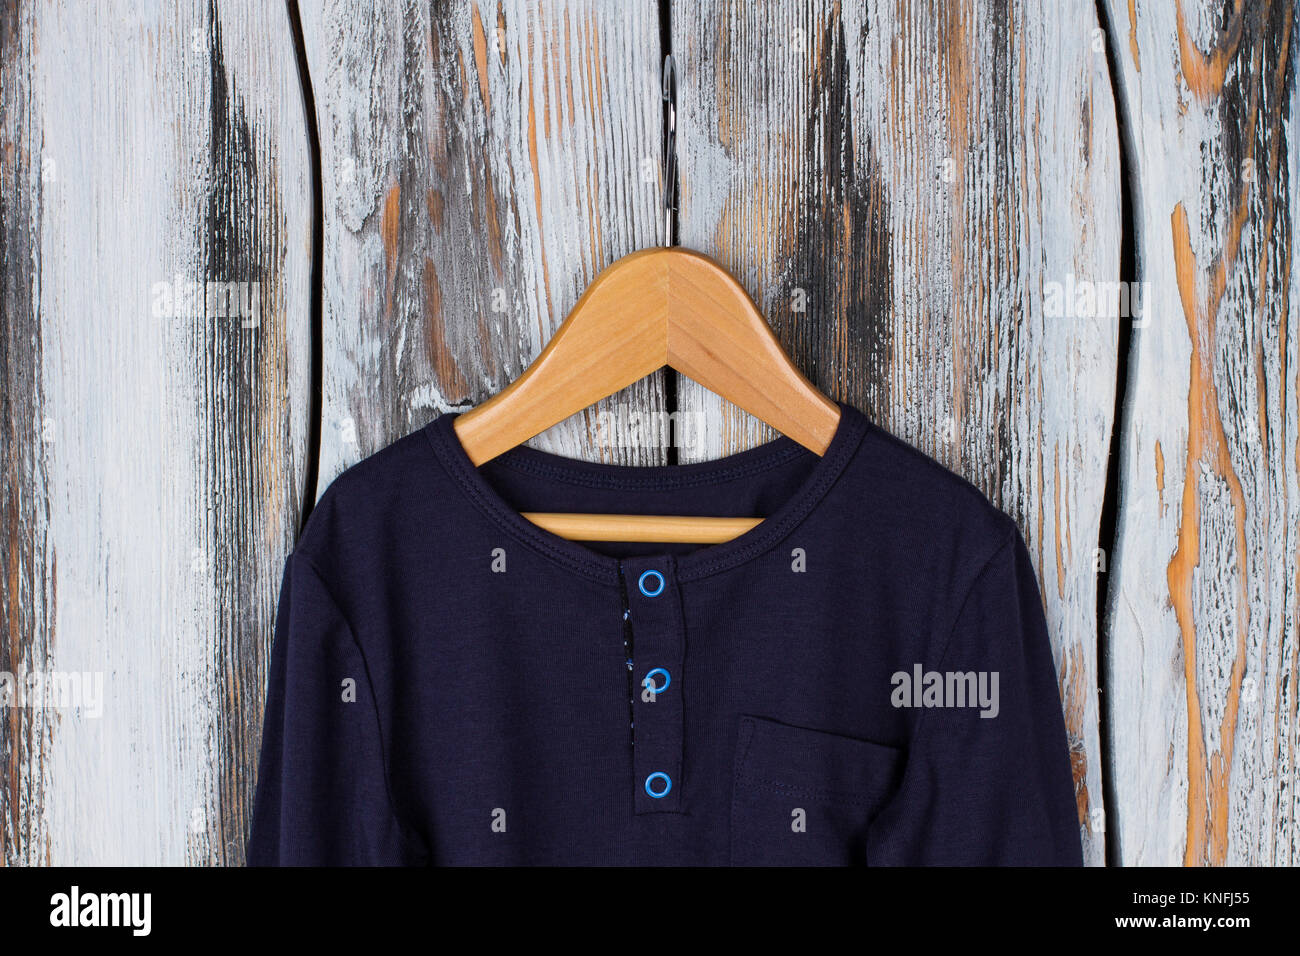 Navy top with blue buttons - Stock Image